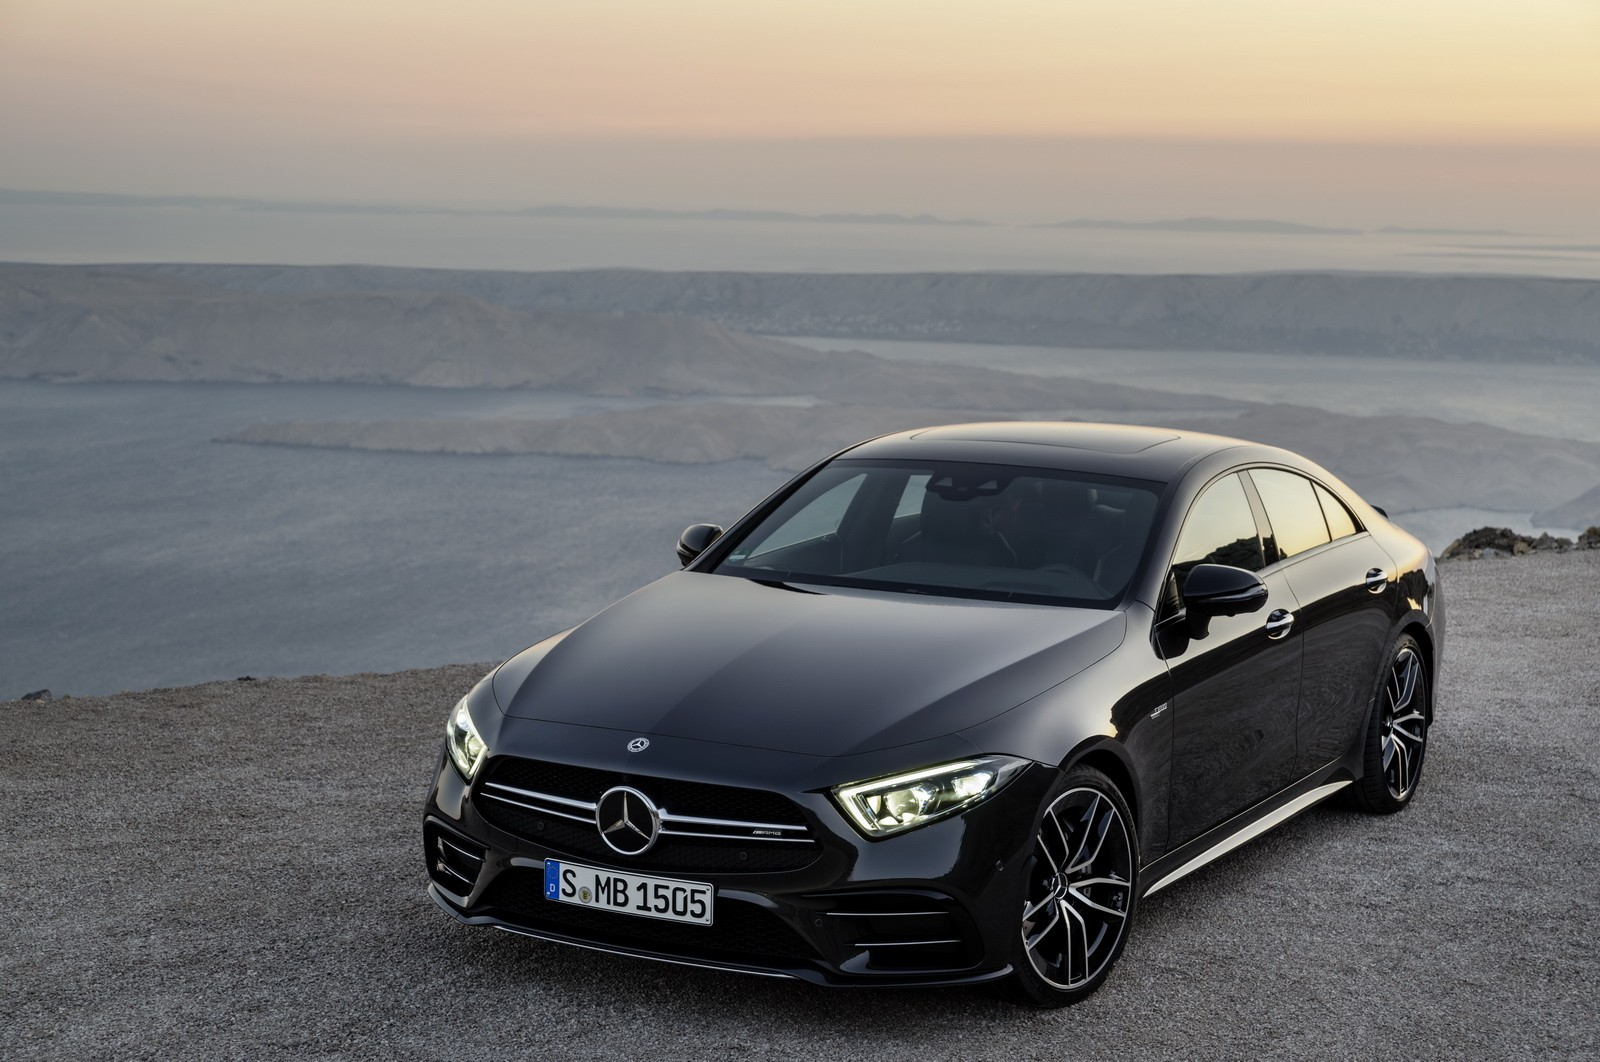 2019 mercedes benz cls class goes on sale from 69 200. Black Bedroom Furniture Sets. Home Design Ideas